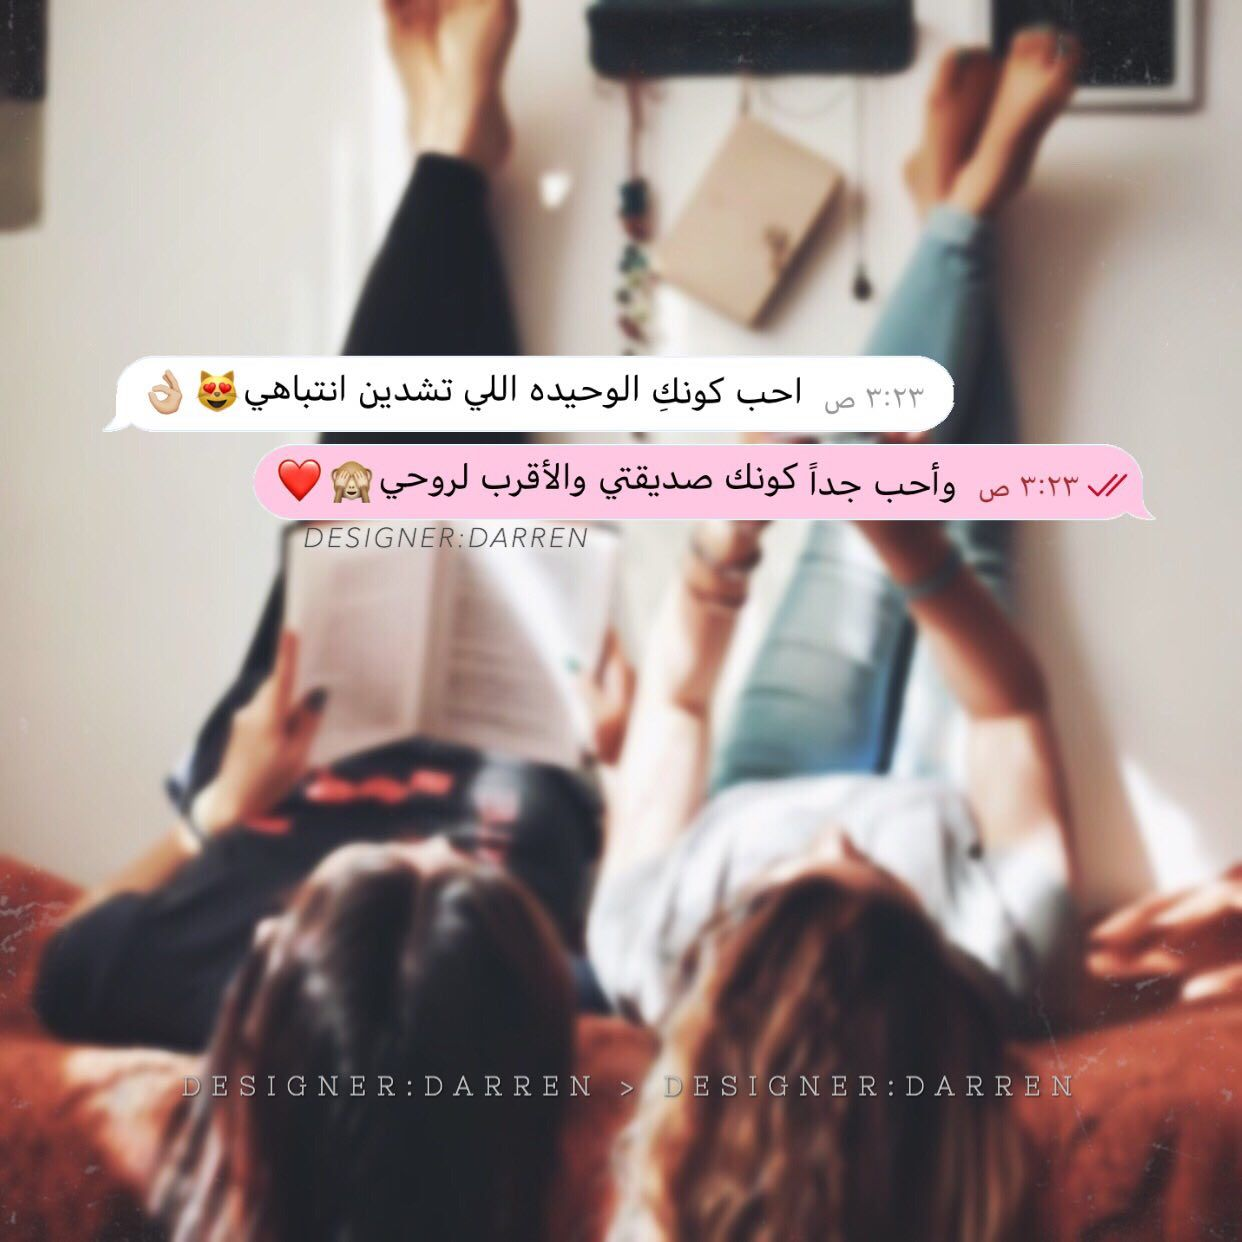 Pin By گرزآيهہ On رمزيات Bff Quotes Movie Quotes Funny Friends Quotes